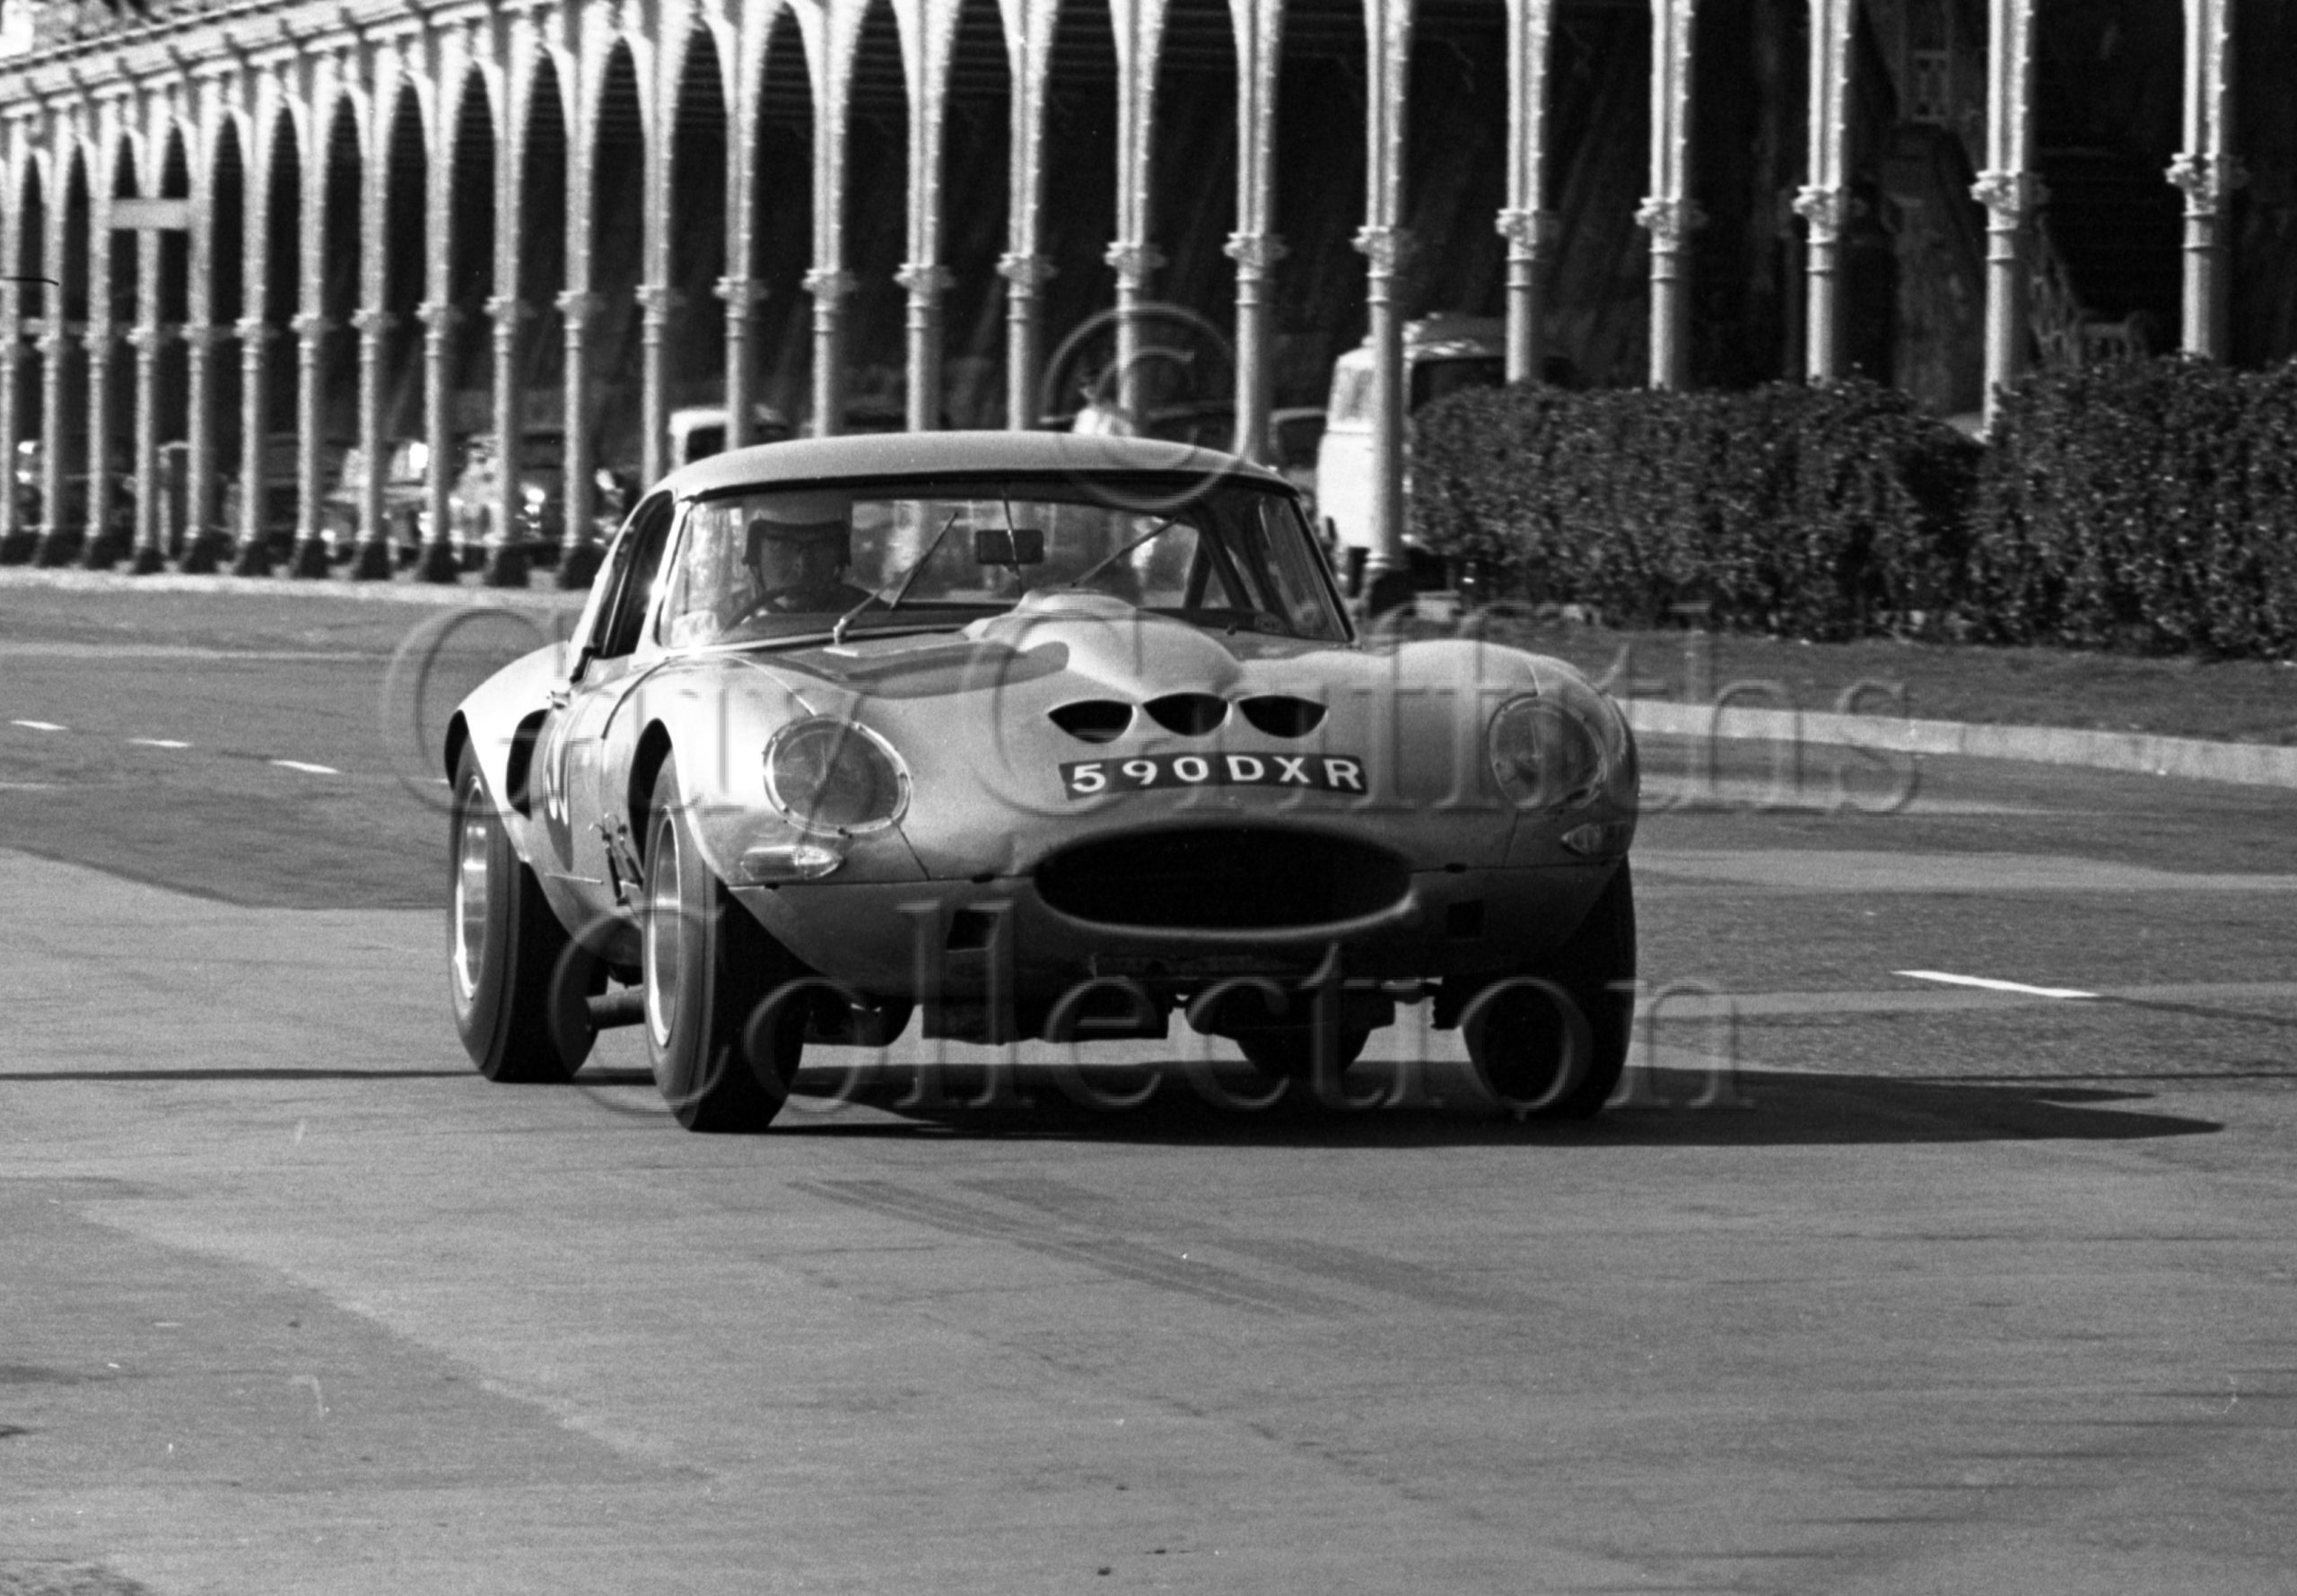 103-141–G-Richardson–Jaguar-Egal-590-DXR–Brighton–17-09-1966.jpg - Guy Griffiths Collection